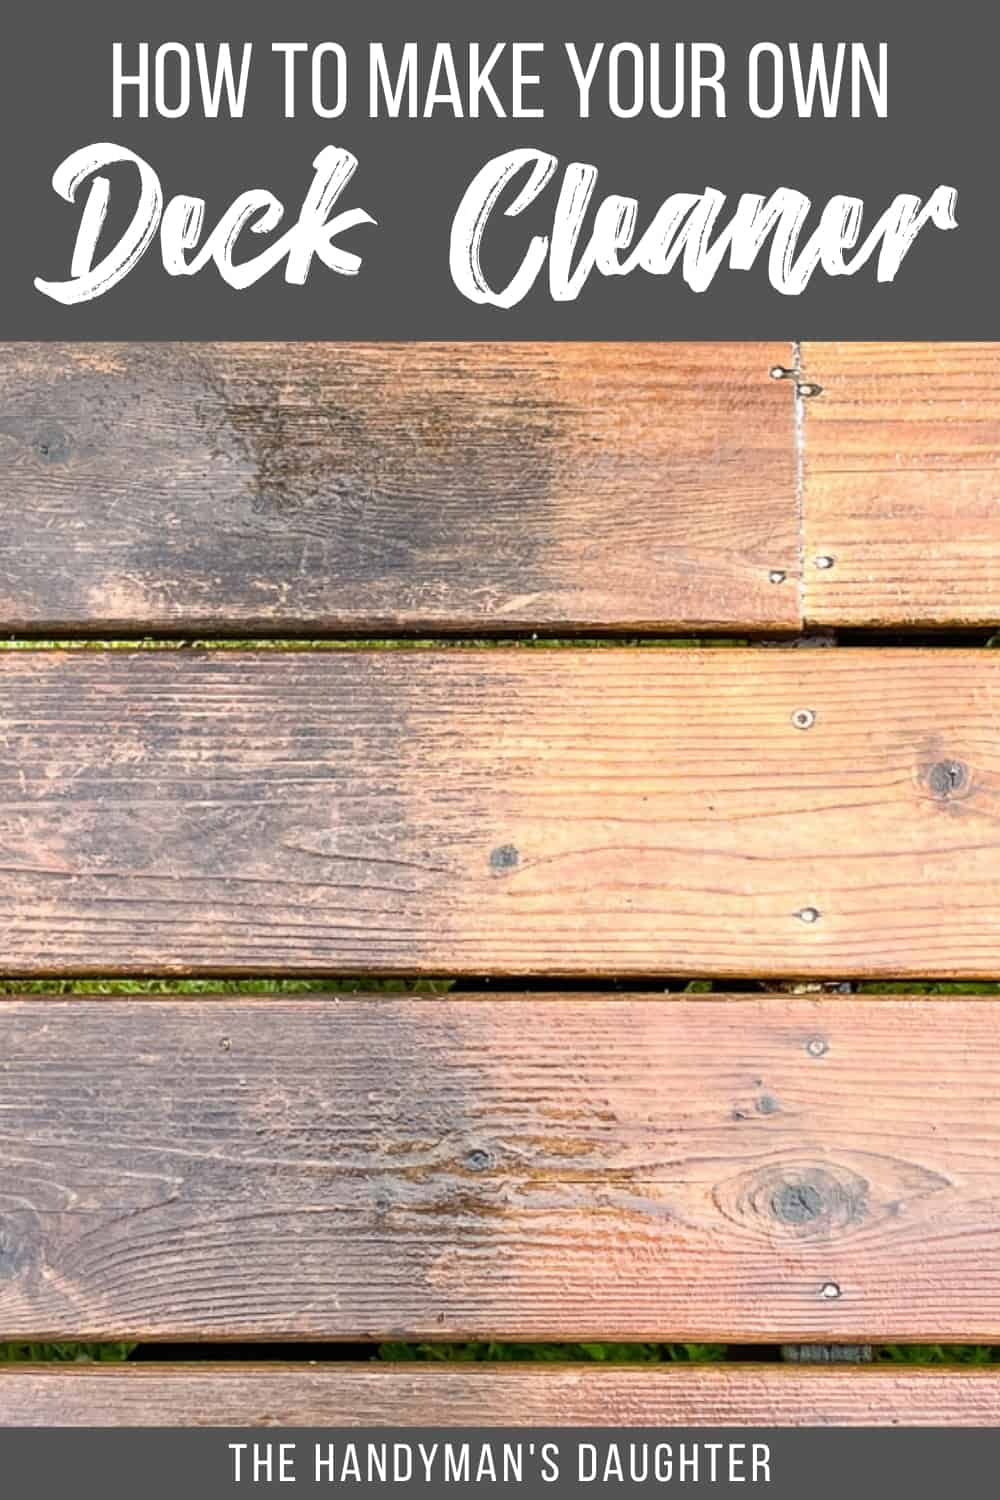 How to Make your own Deck Cleaner